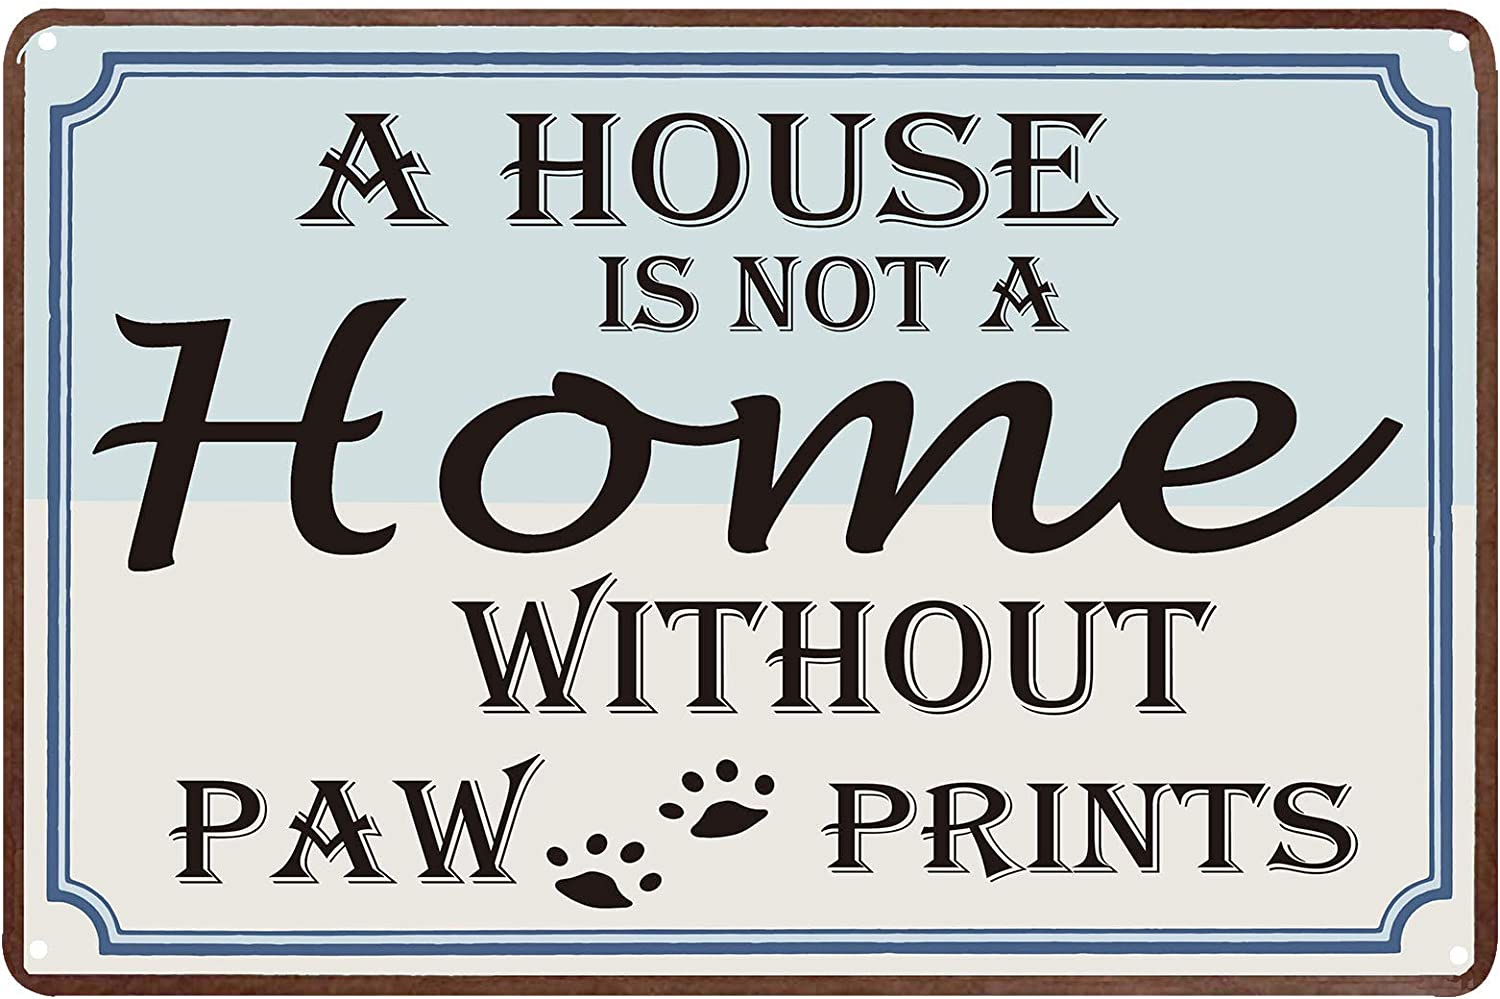 FSTIKO A House is Not A Home Without Paw Prints Retro Vintage Metal Tin Signs Farm Decorative Country Home Decor Signs Gift 8X12Inch